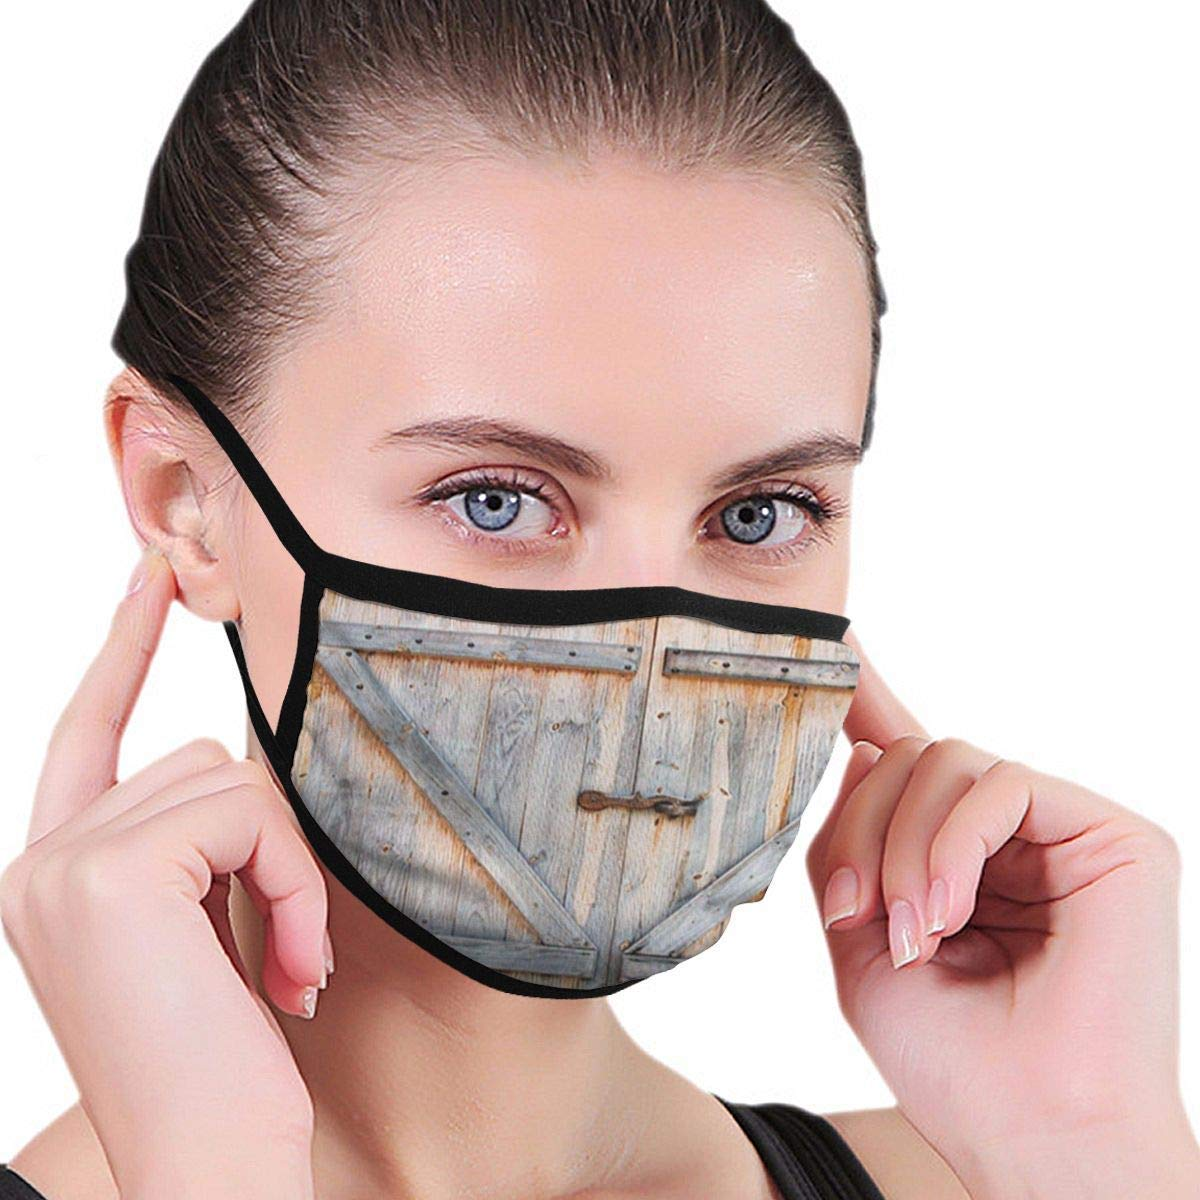 Bdwuhs Mascarillas Bucales Barn Wooden Door with Knocker Artistic Print Breathable Respirator Mask Grade Flu Mask Carbon Activated Filtration – Reusable Washable – Comfy Polyester Adjustable